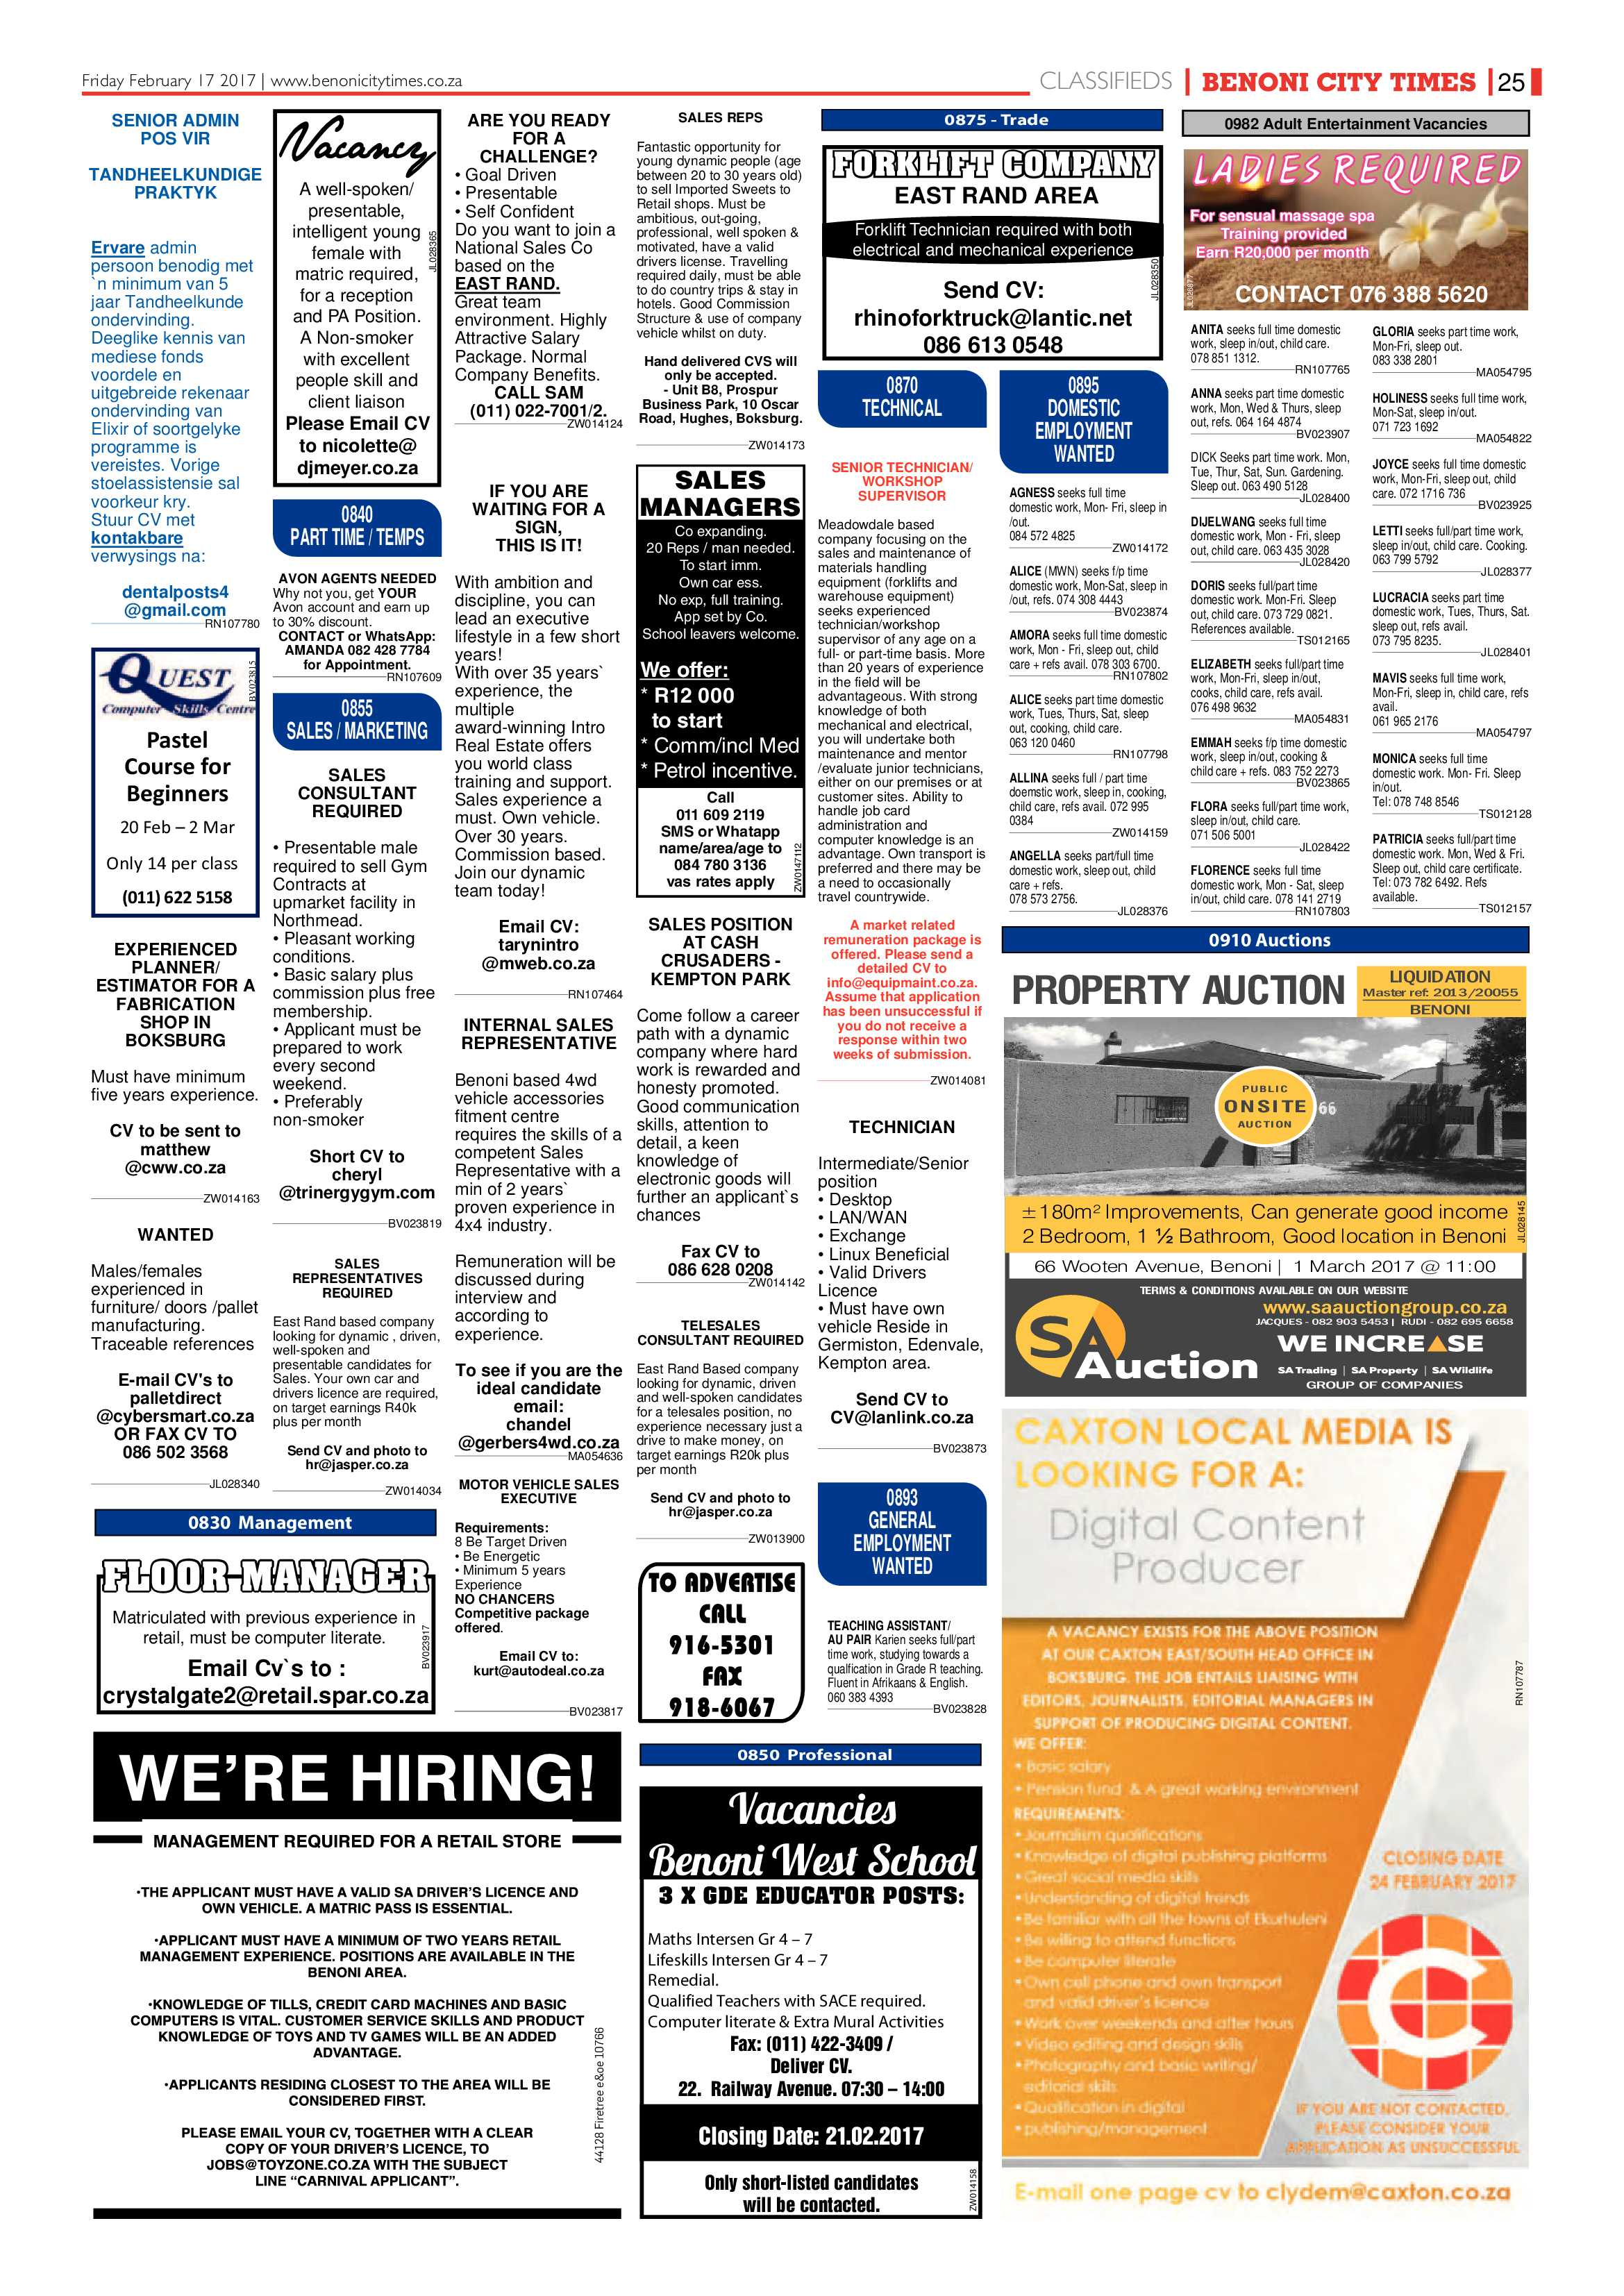 benoni-city-times-16-february-2017-epapers-page-25